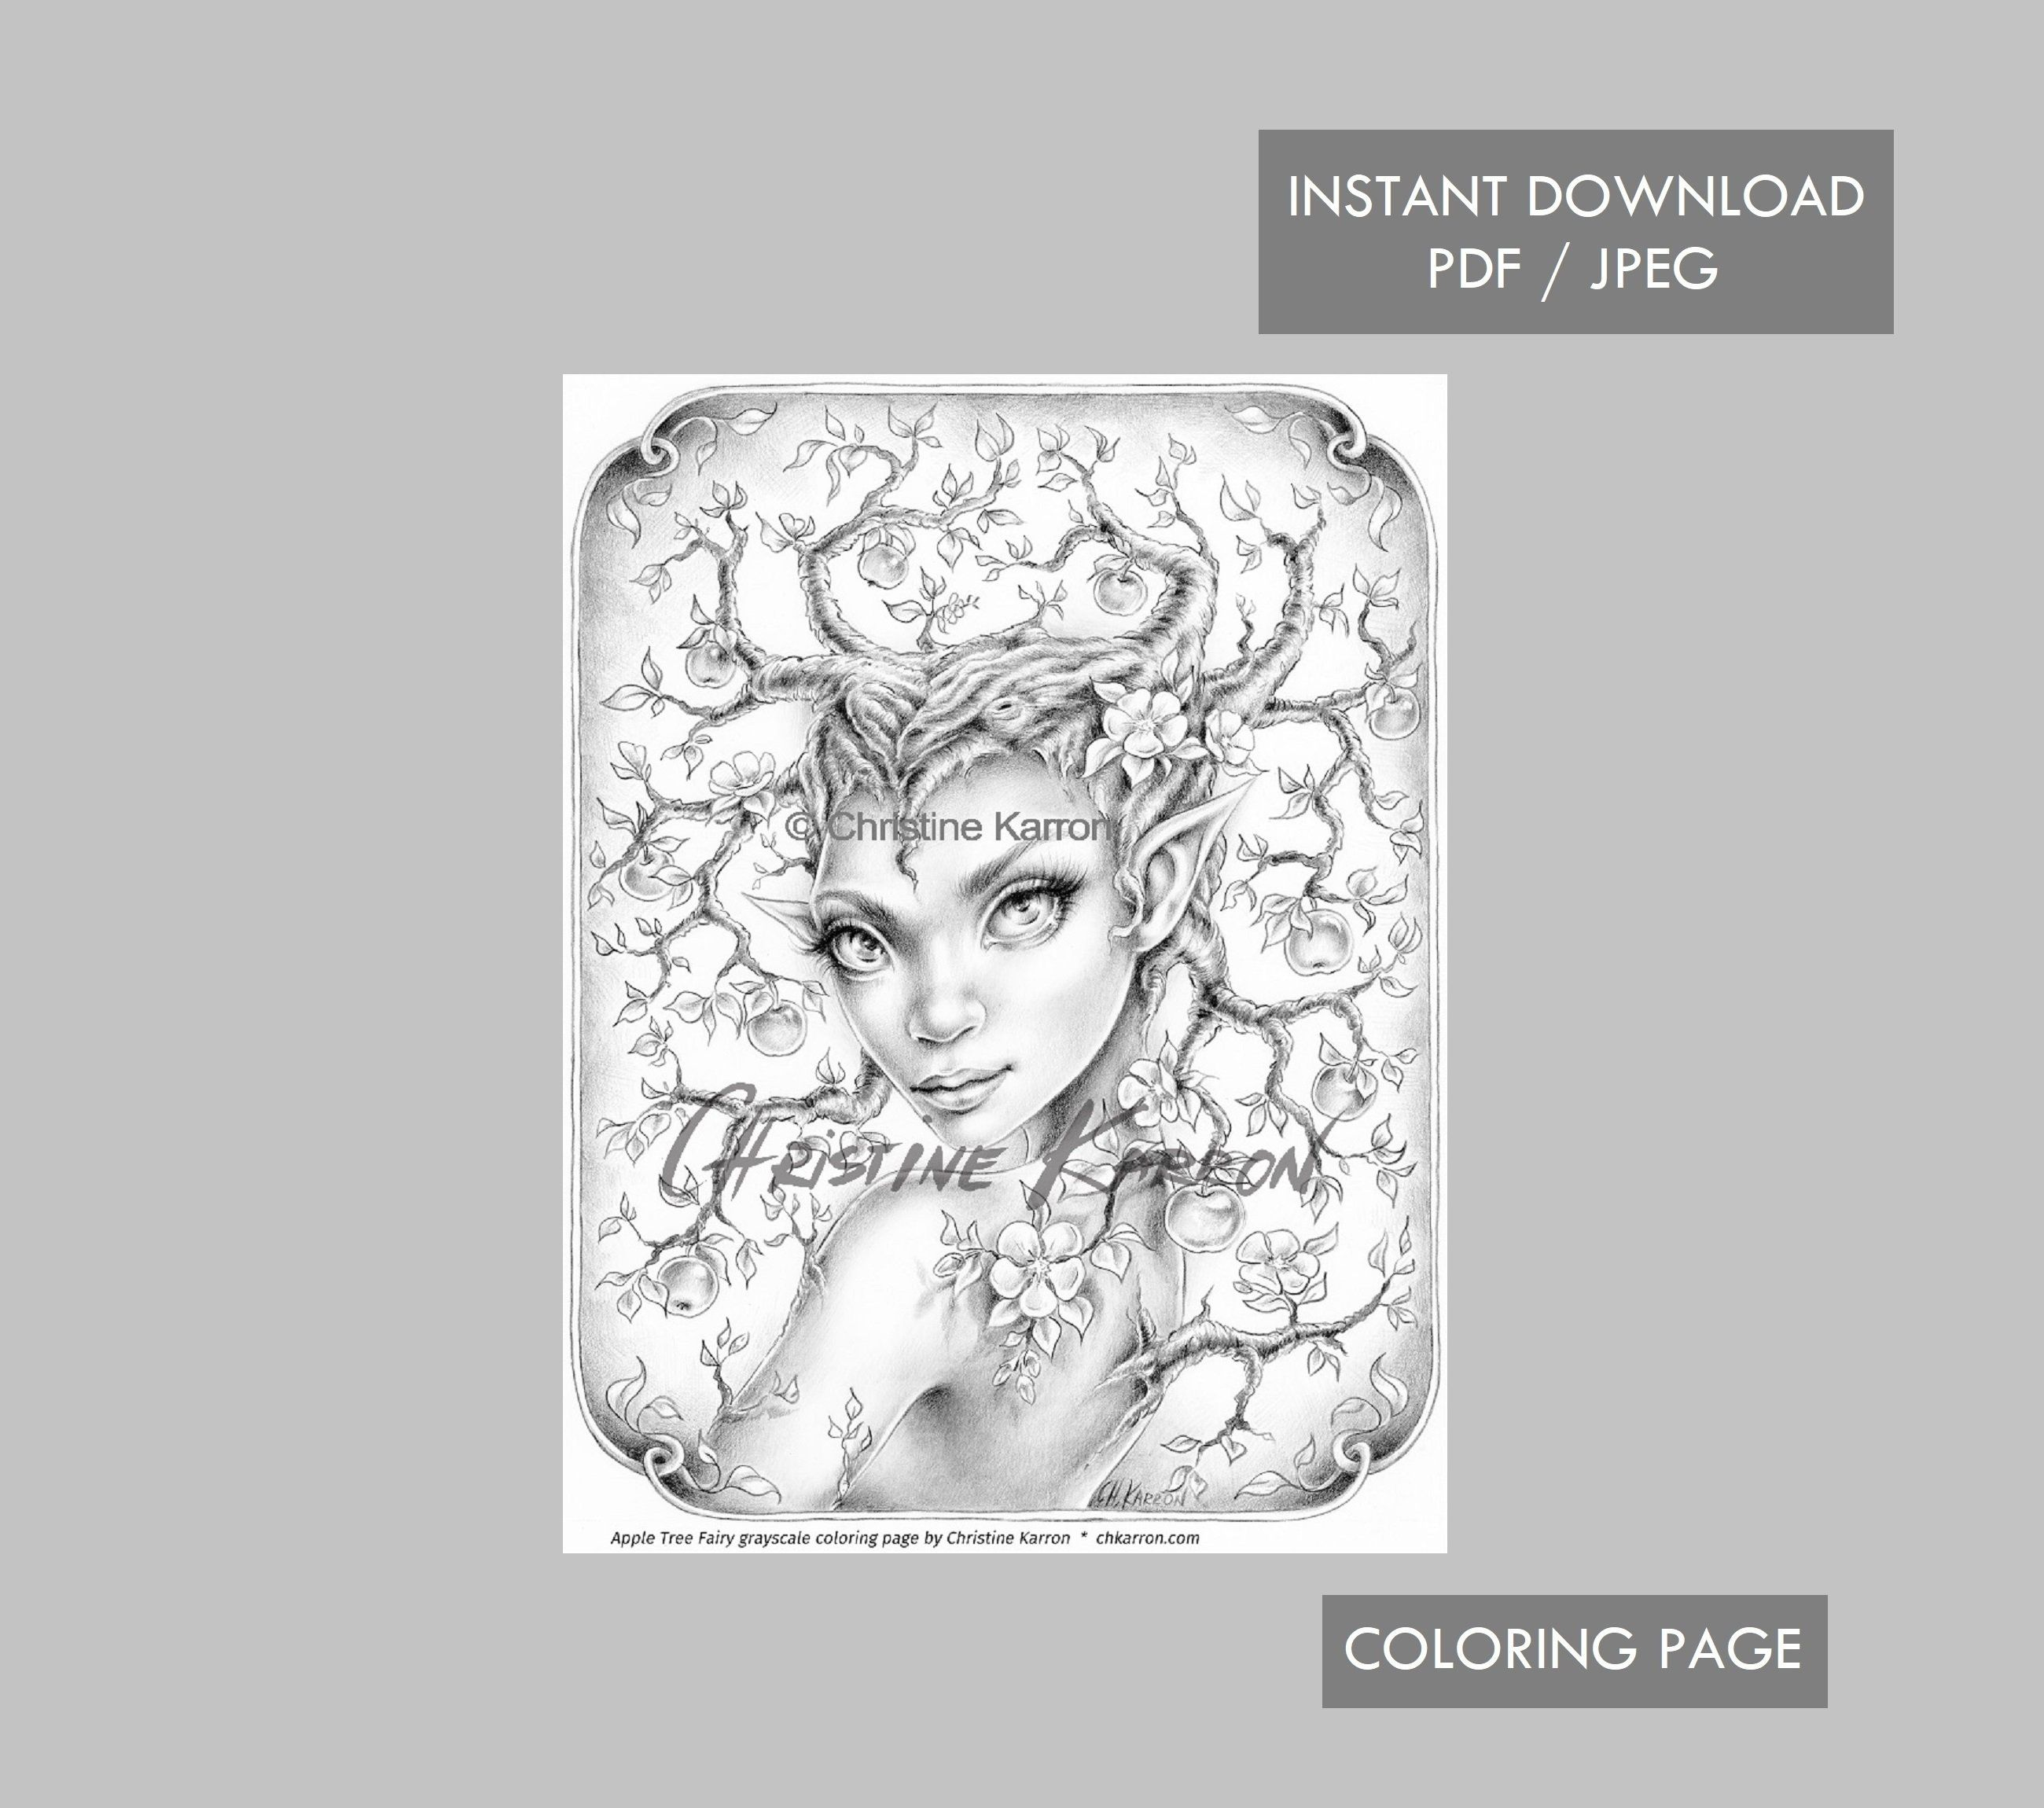 Apple Tree Fairy Coloring Page Grayscale Instant Download Printable File Jpeg And Pdf Fairy Coloring Pages Fairy Coloring Coloring Pages [ 2300 x 2600 Pixel ]